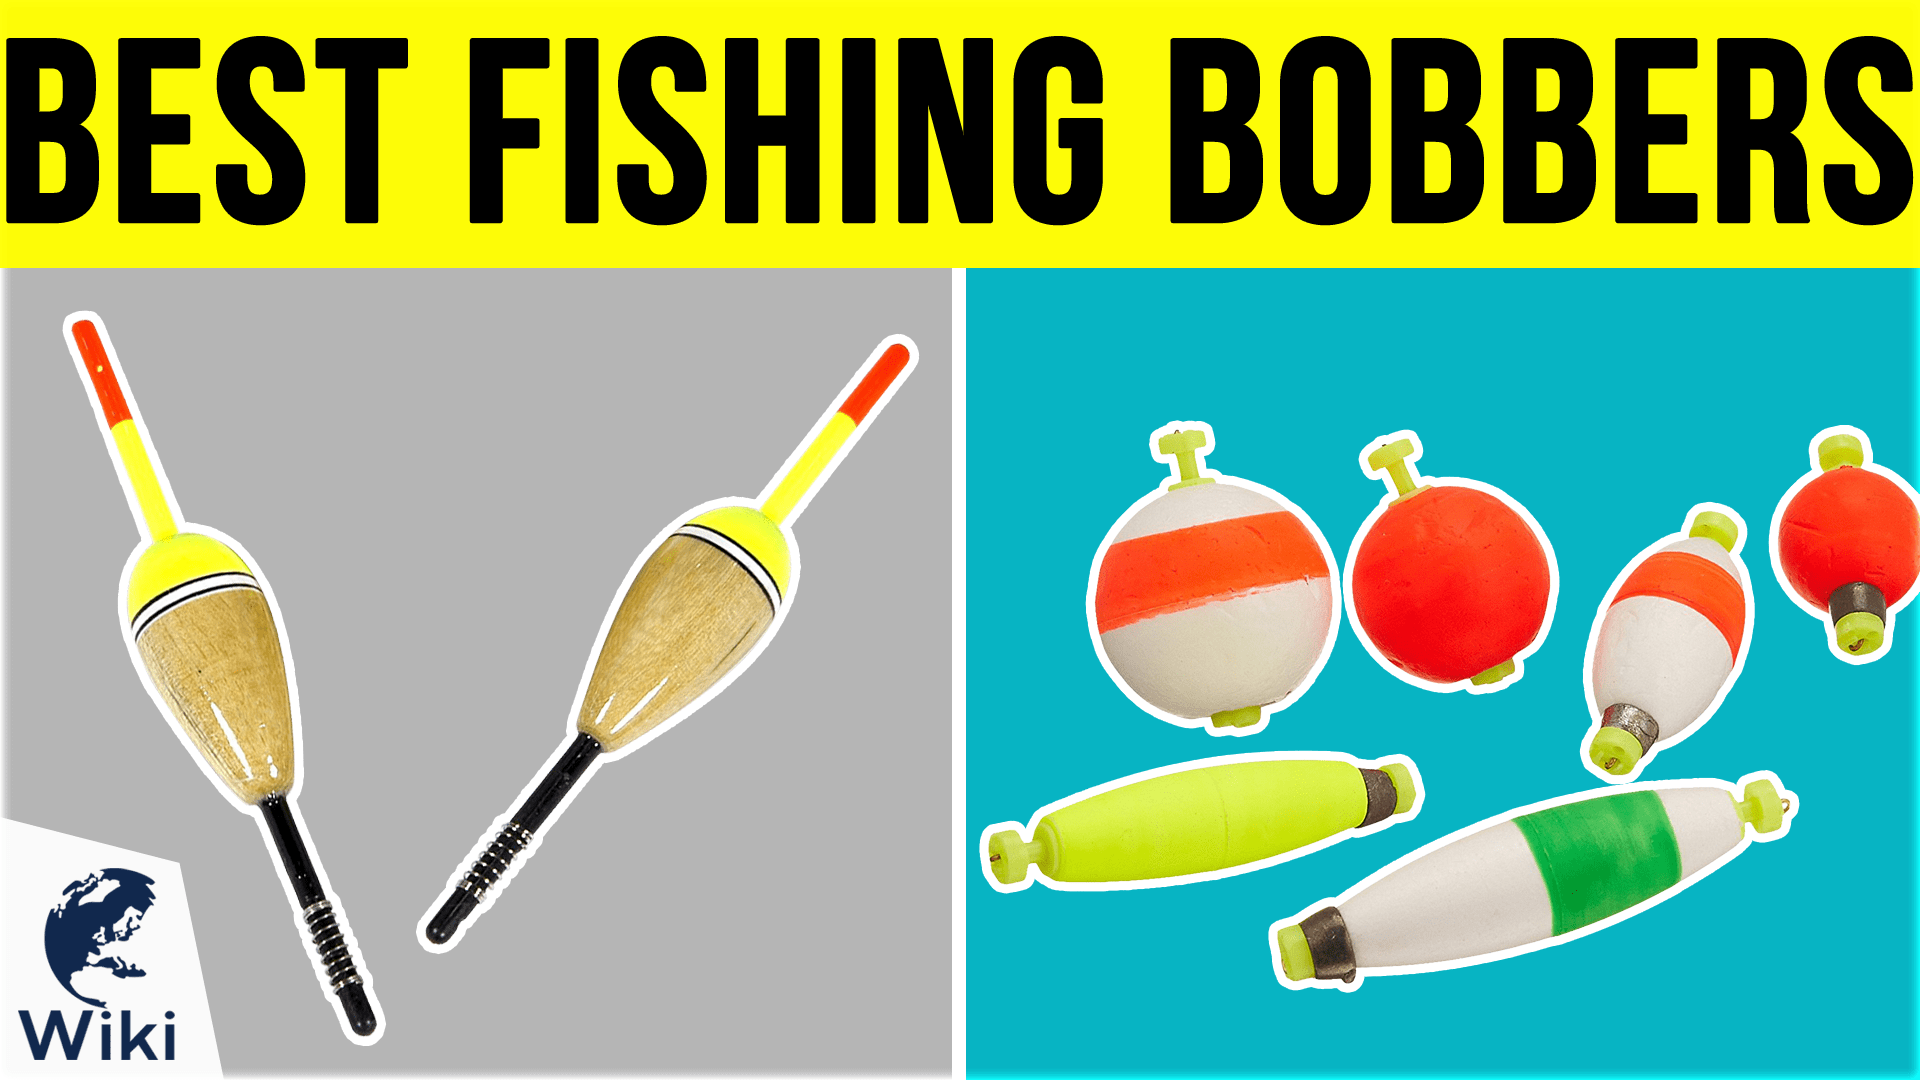 18 Popping Bobbers//Floats Weighted Slotted Green//White//Red.Sizes 5/'/',4/'/' 3/'/',2